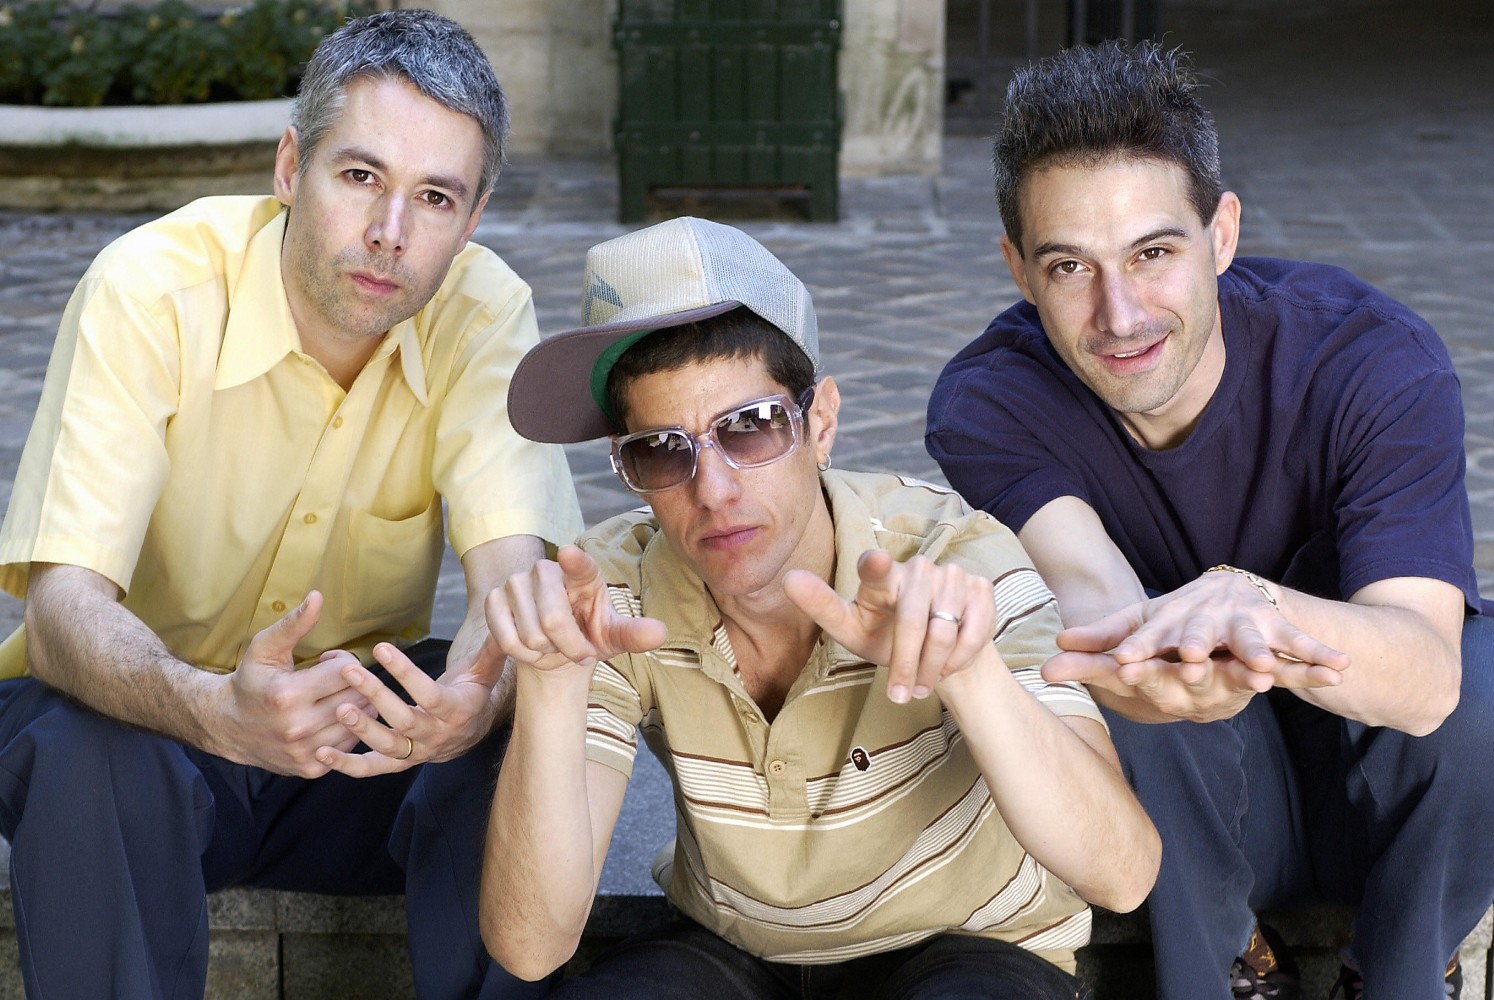 Beastie Boys: SPIN's 2004 Cover Story, 'Twilight of the Brats'